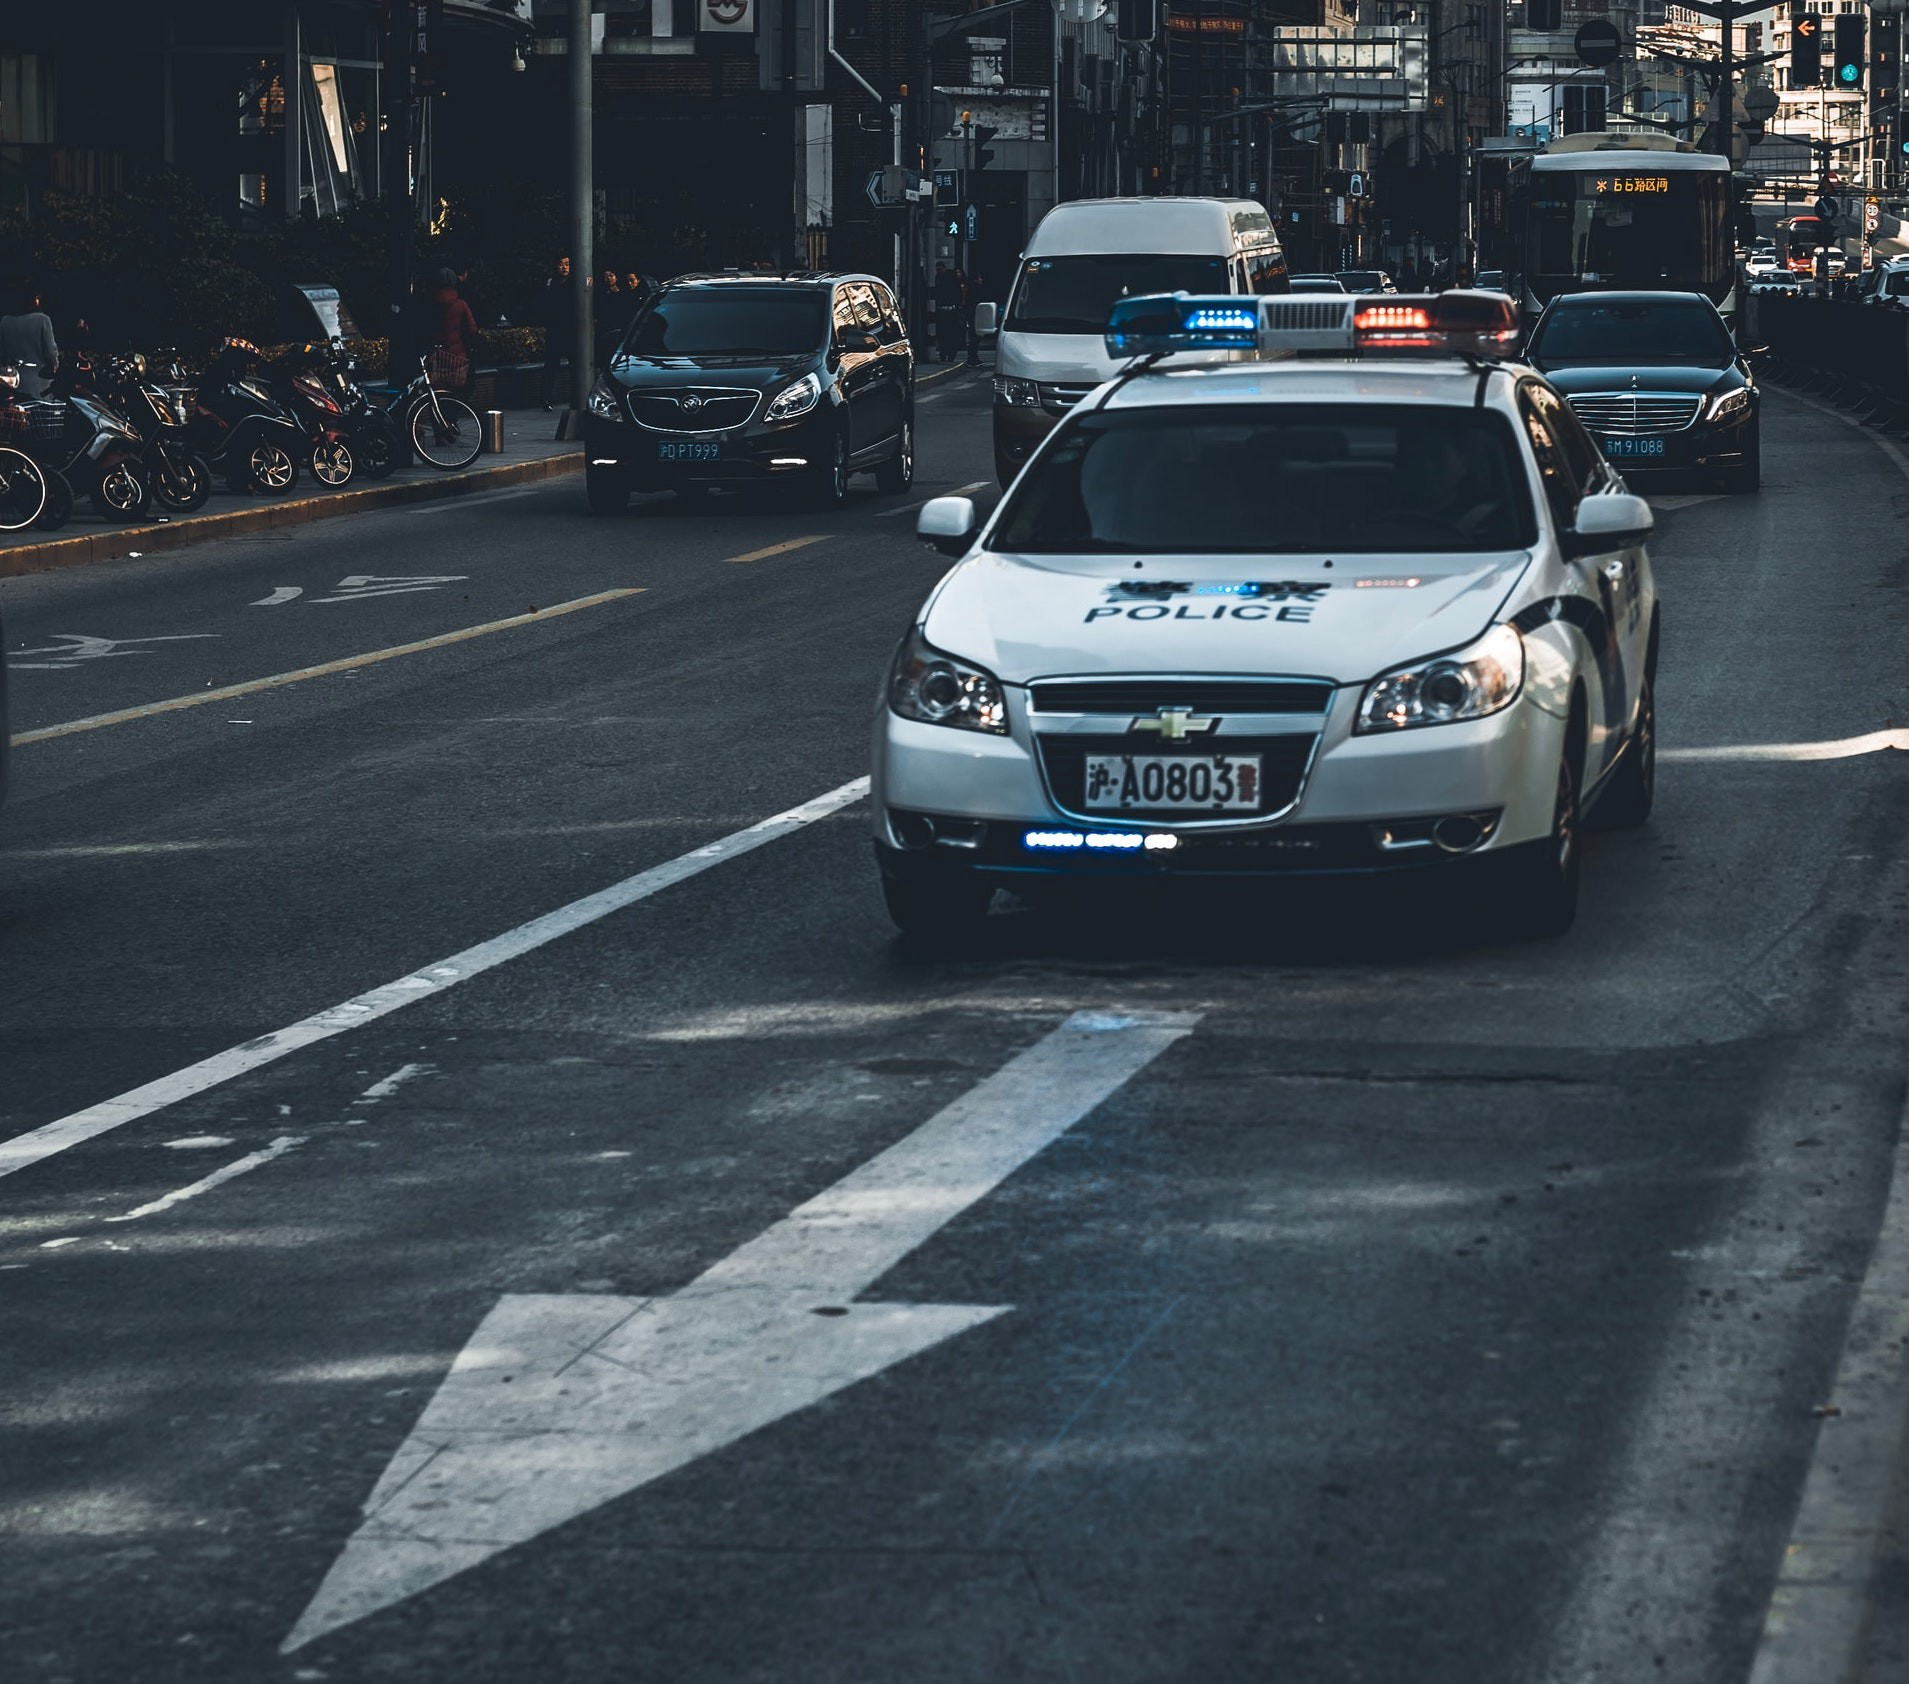 A patroling police car driving down the street